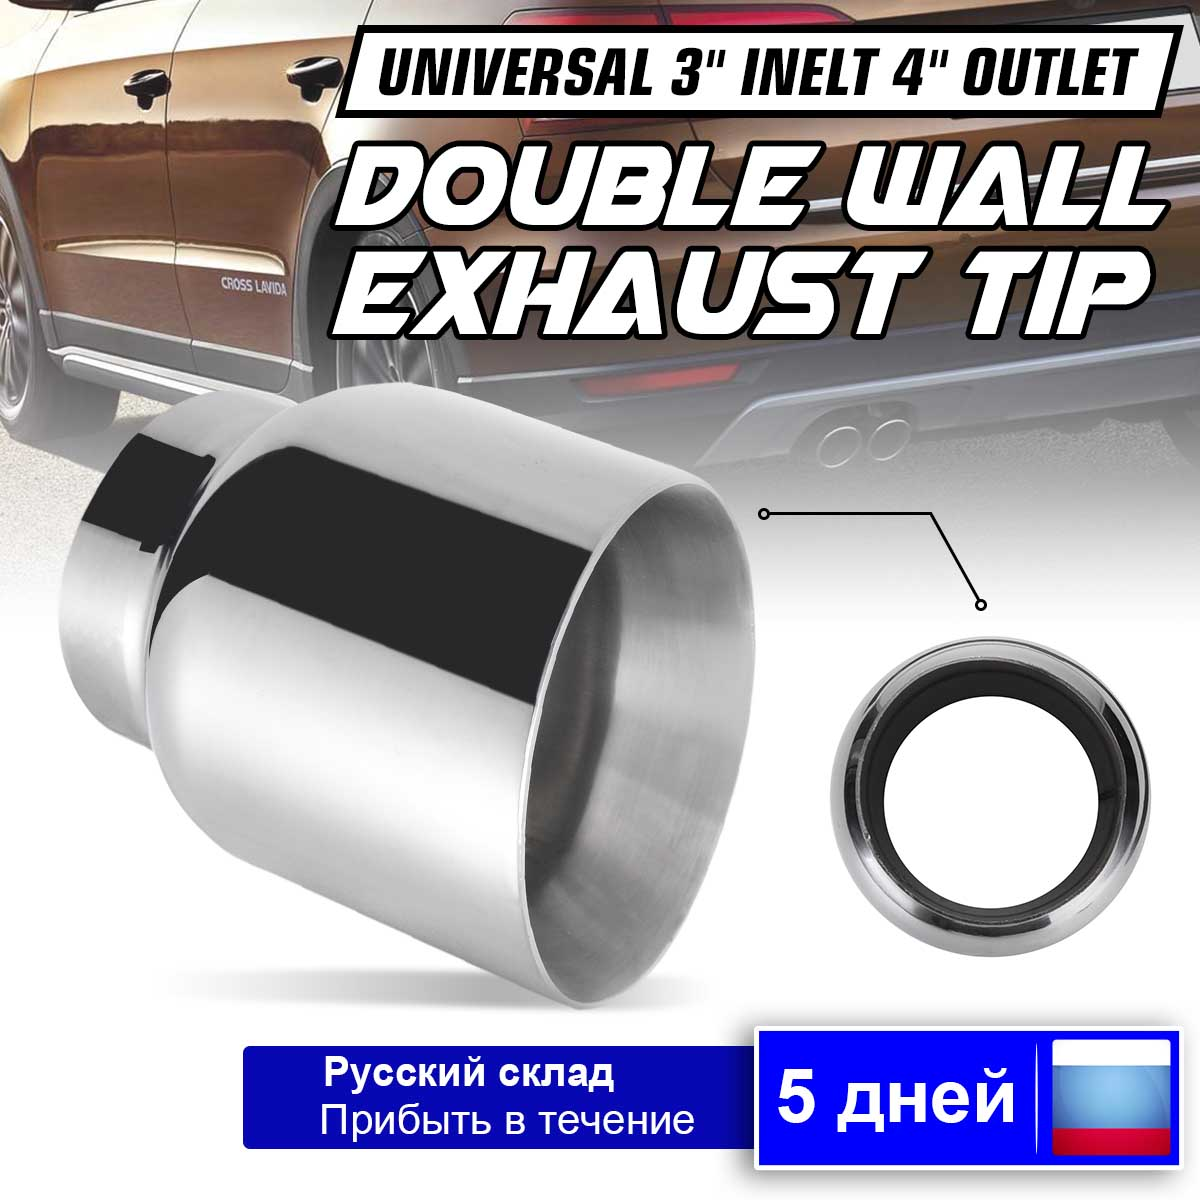 universal car exhaust tip 3 inlet 4 outlet auto tail pipe muffler dual wall angle cut outlet nozzle